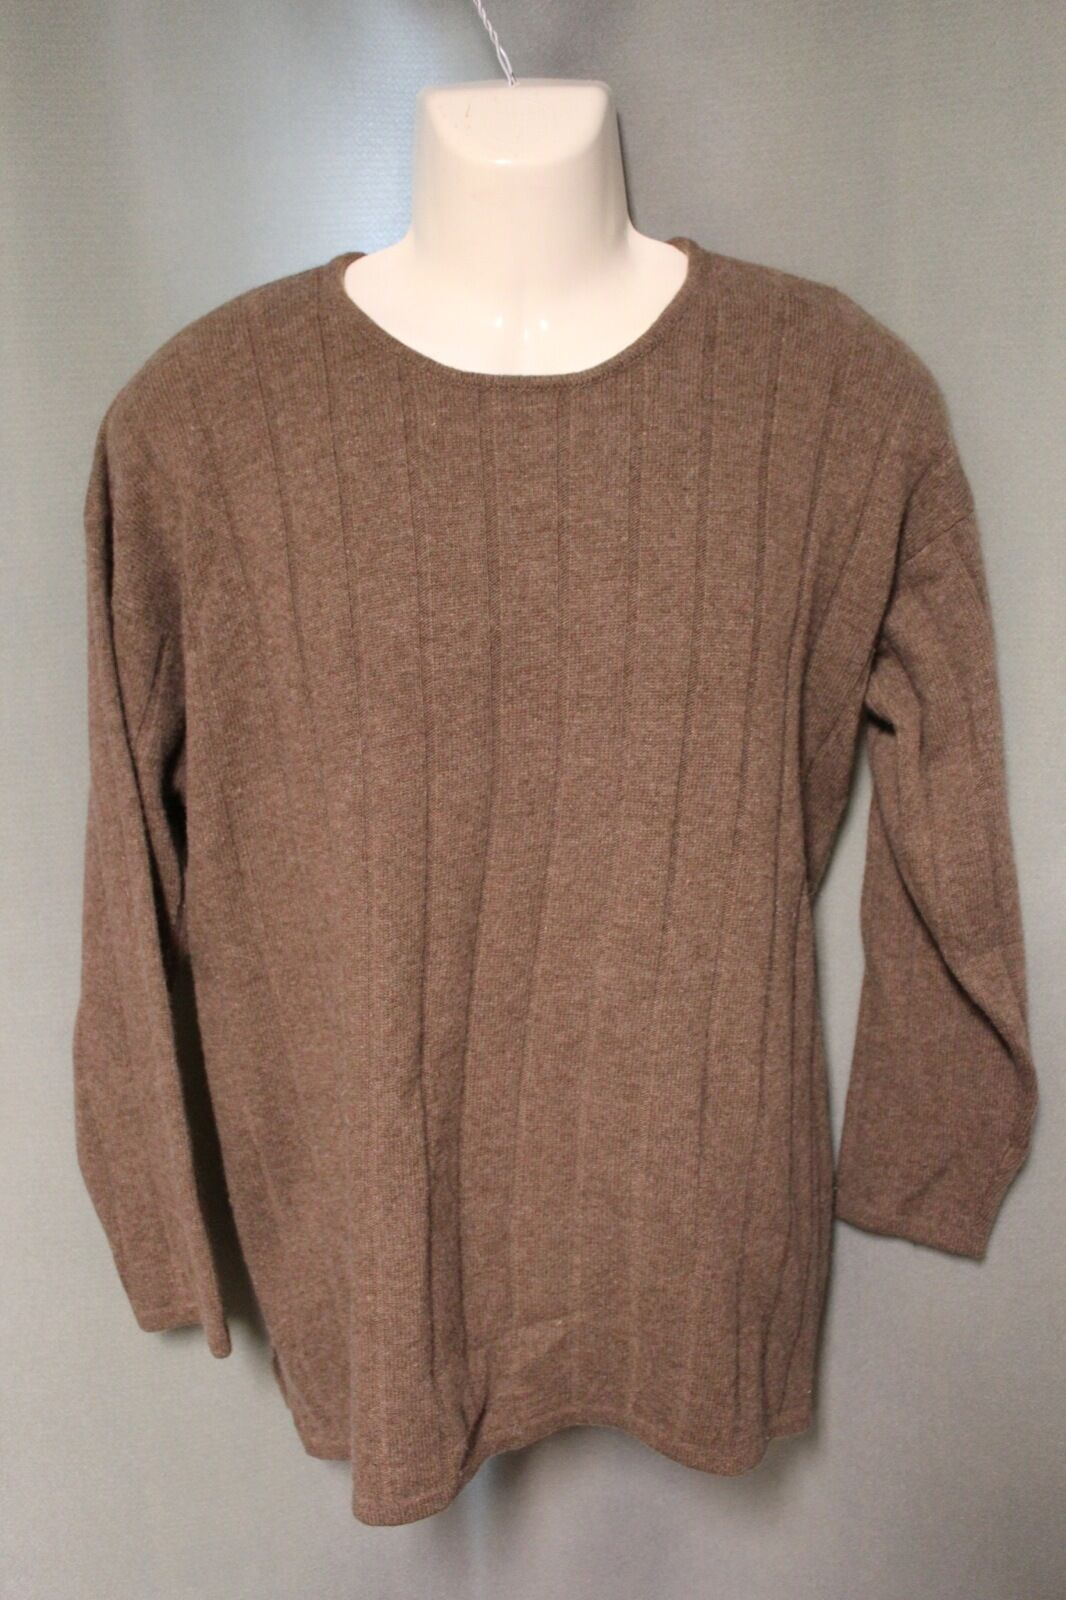 1c21234b Club 100% Cashmere Brown Sweater M Medium Charter oblnlx20533 ...